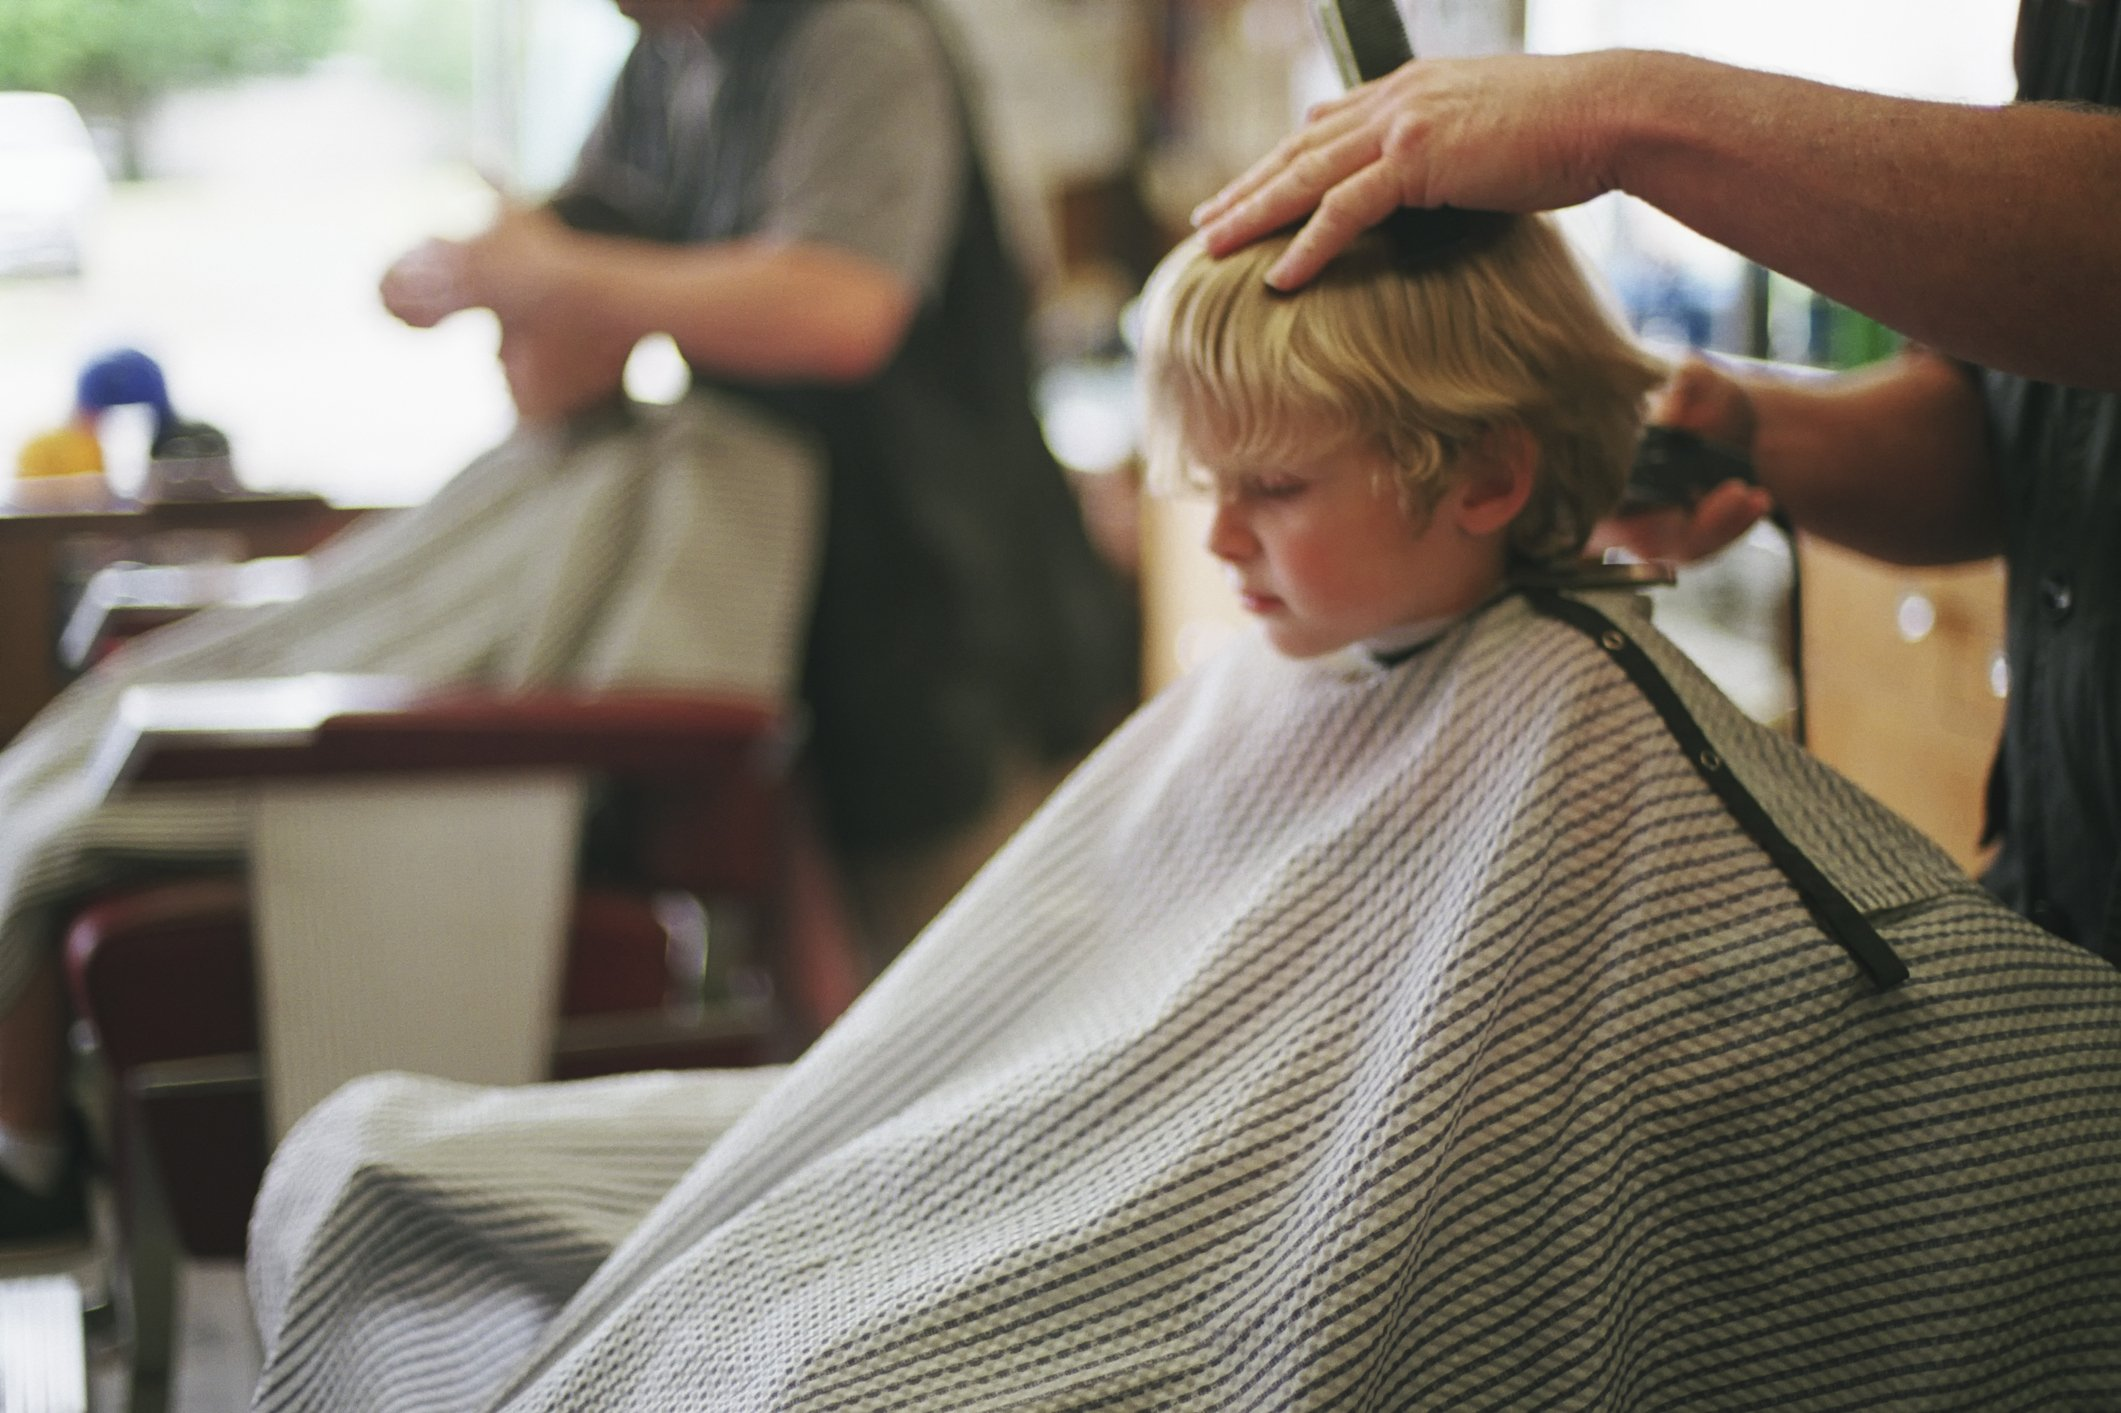 A young, five-year-old boy sits patiently while getting his hair cut at a local barbershop. | Photo: Getty Images